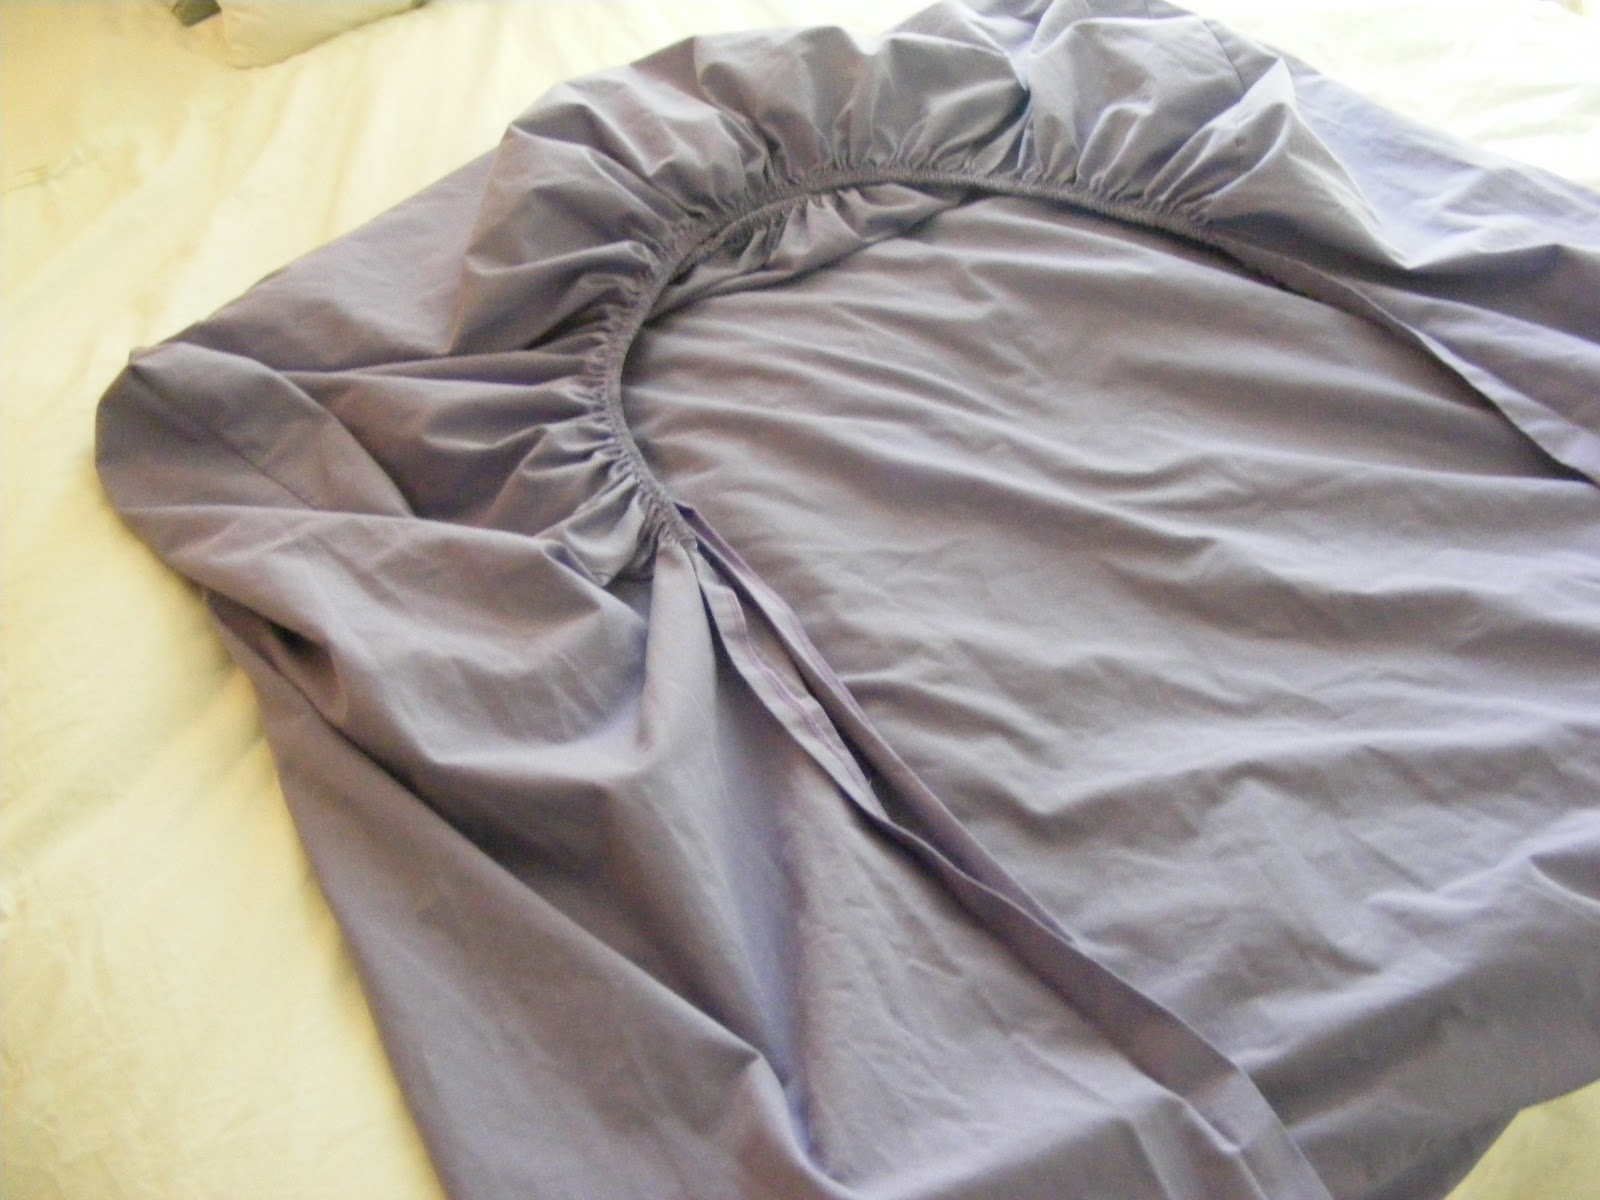 Flat Rubber Bed Sheets